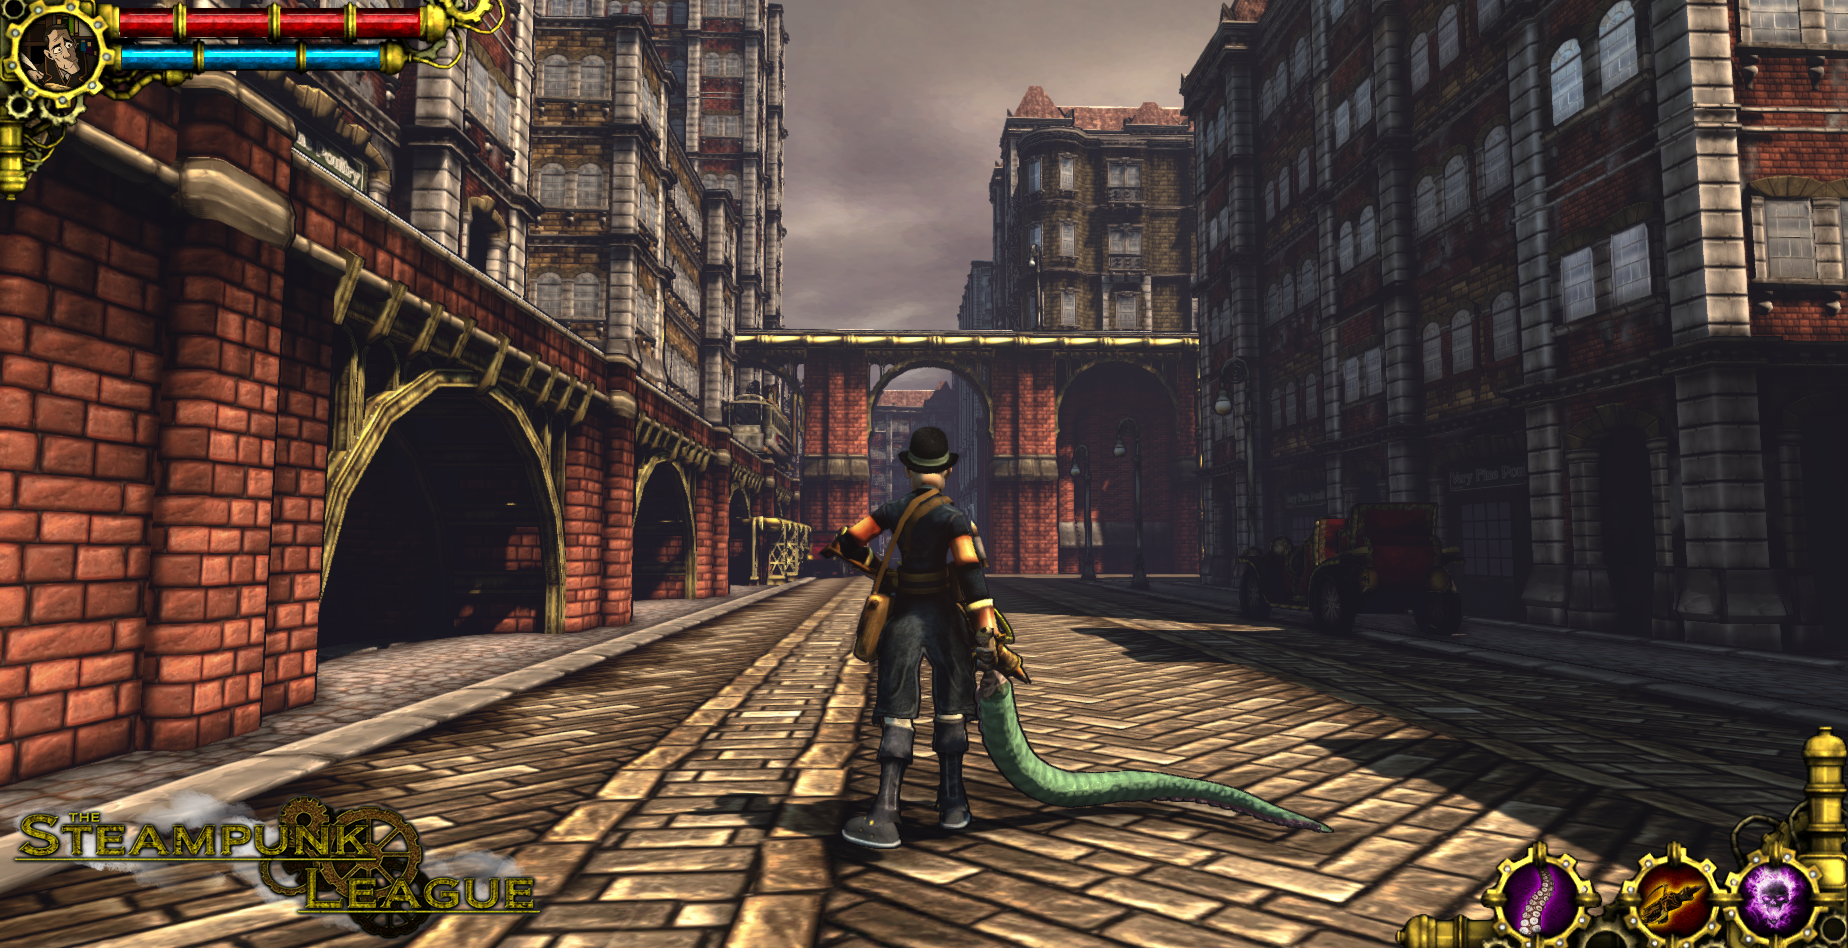 Get Me A Job >> Lovecraft, occult detective image - The Steampunk League - Indie DB